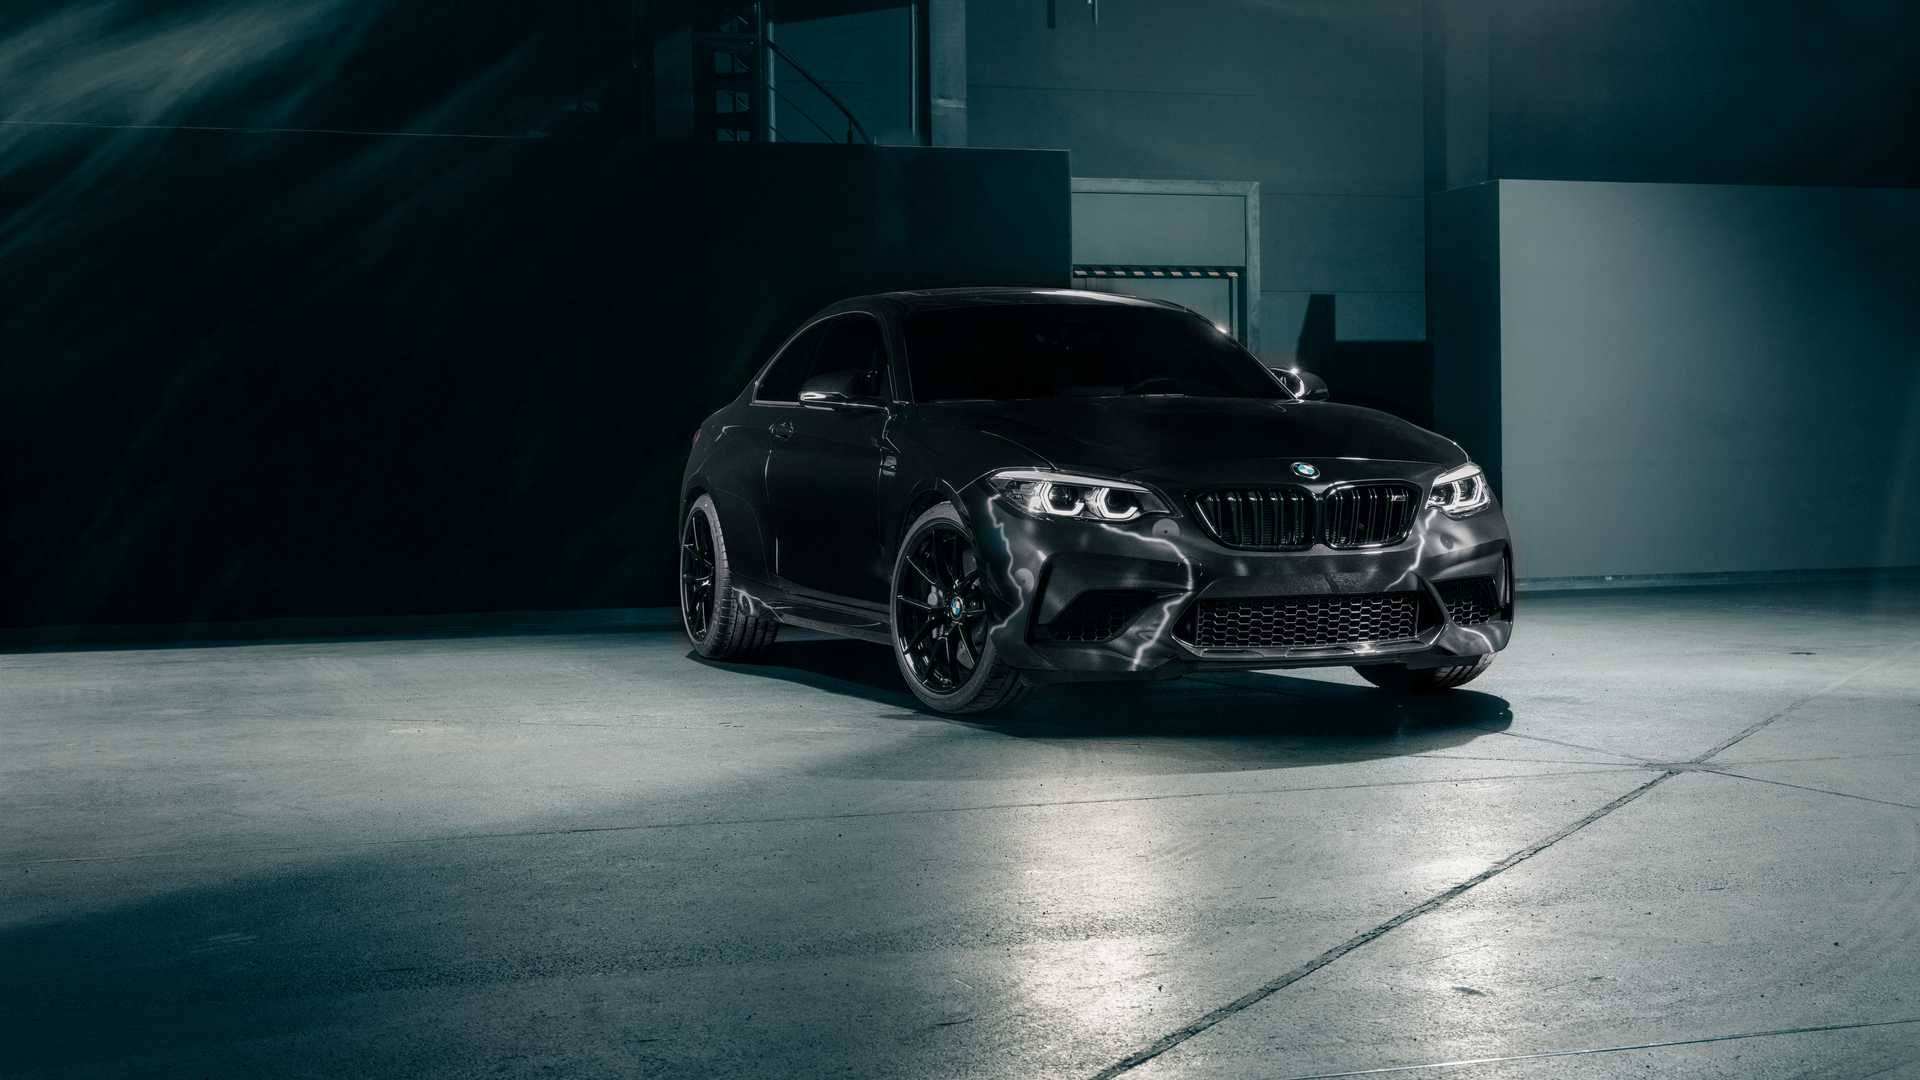 bmw-m2-competition-by-futura-2000-4